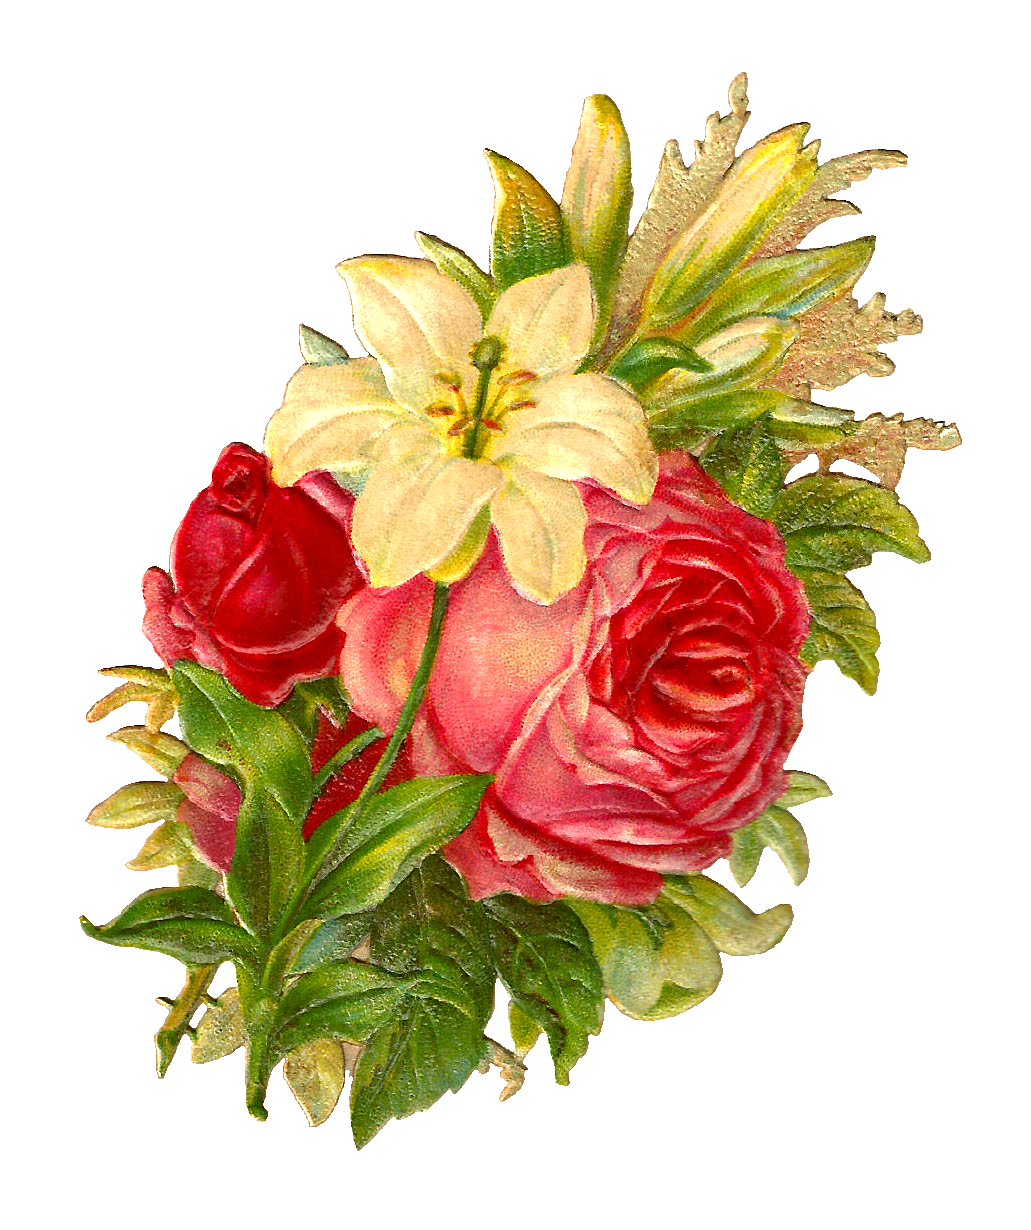 Antique nosegay clipart free picture freeuse Antique Images: Free Digital Flower Bouquet Images of Red and Pink ... picture freeuse